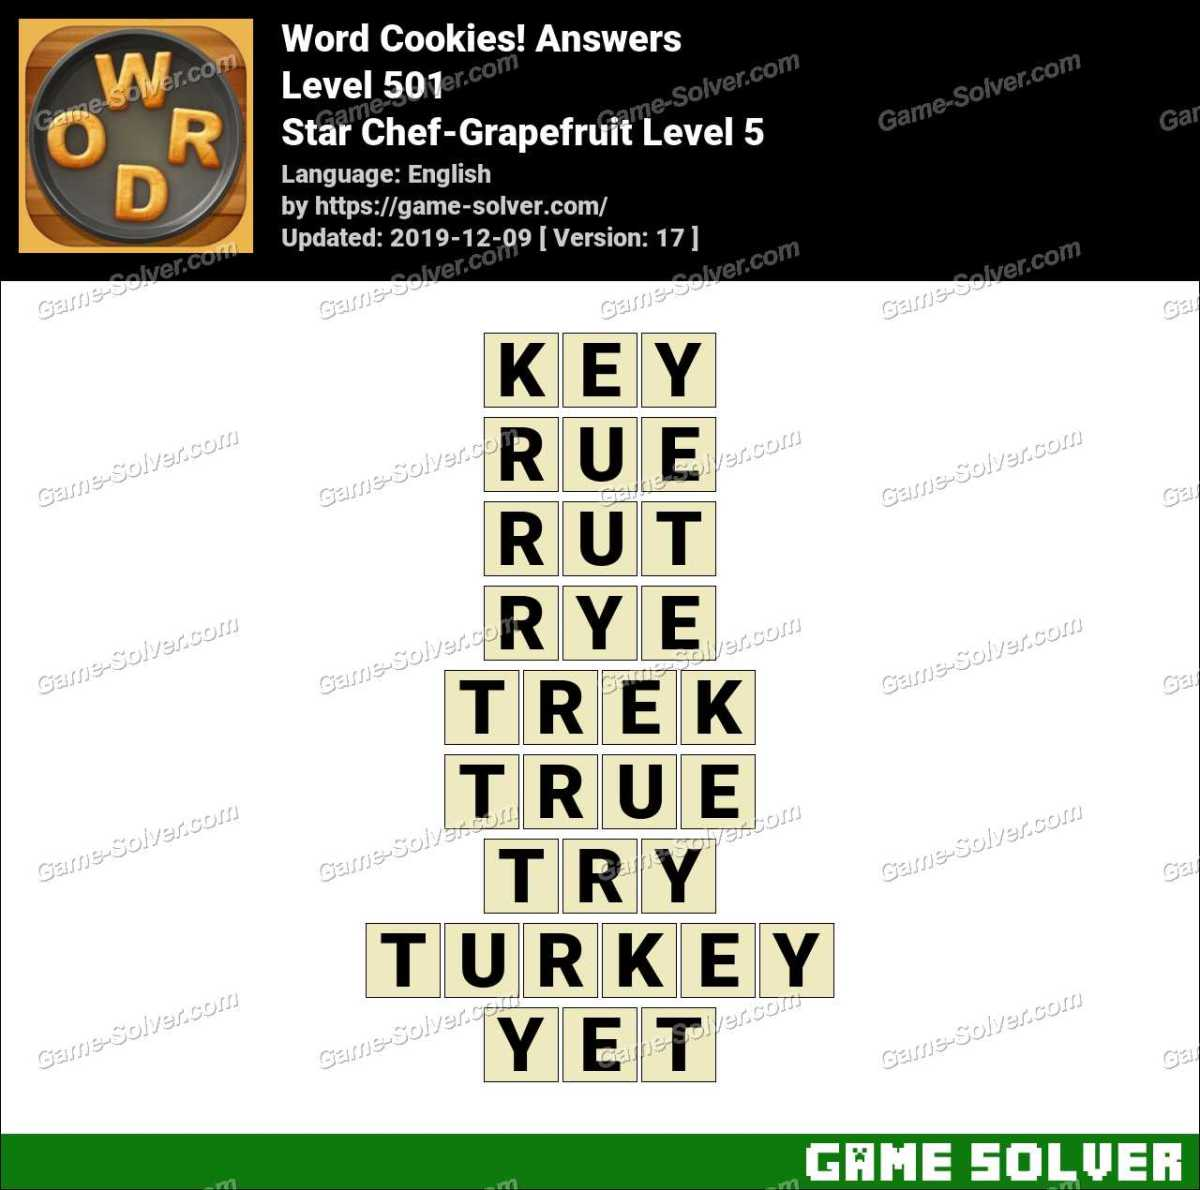 Word Cookies Star Chef-Grapefruit Level 5 Answers